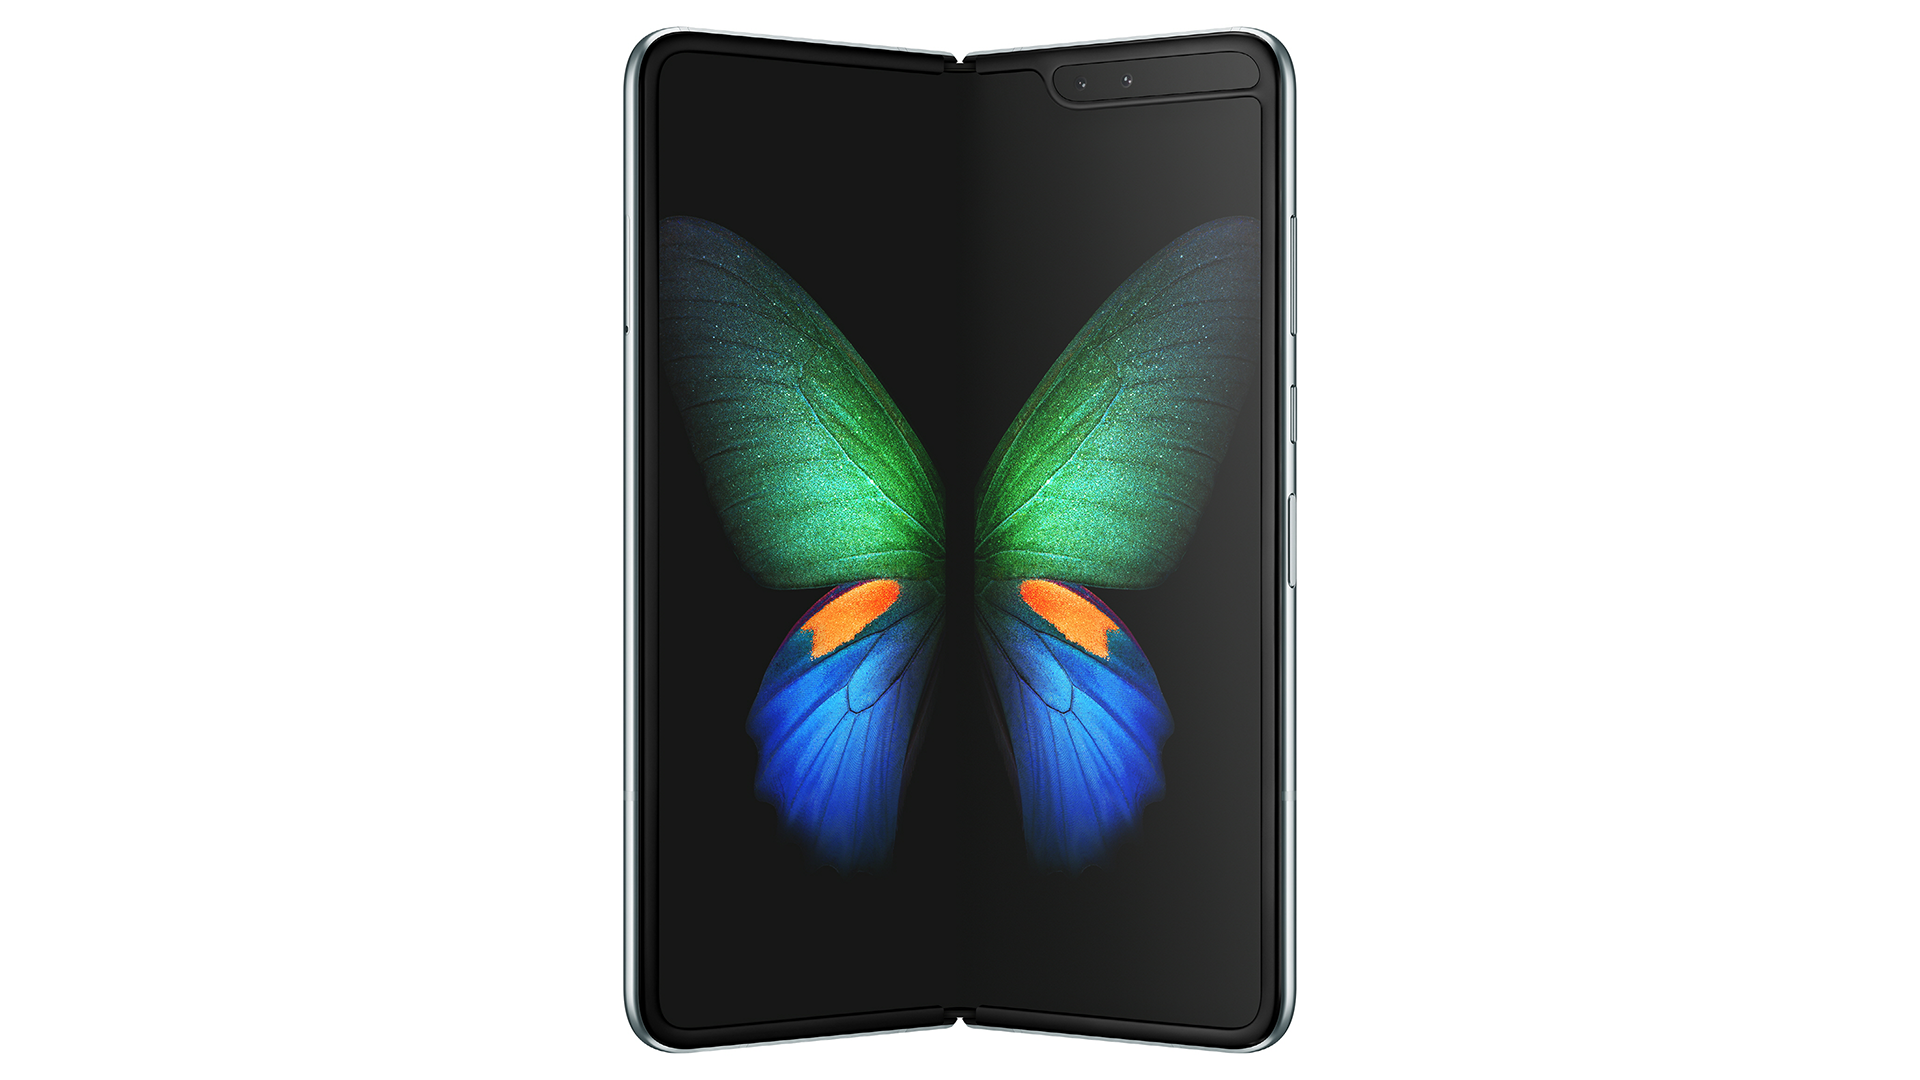 THE GALAXY FOLD IS SAMSUNGS NEW FOLDING PHONE AND IT LOOKS GREAT